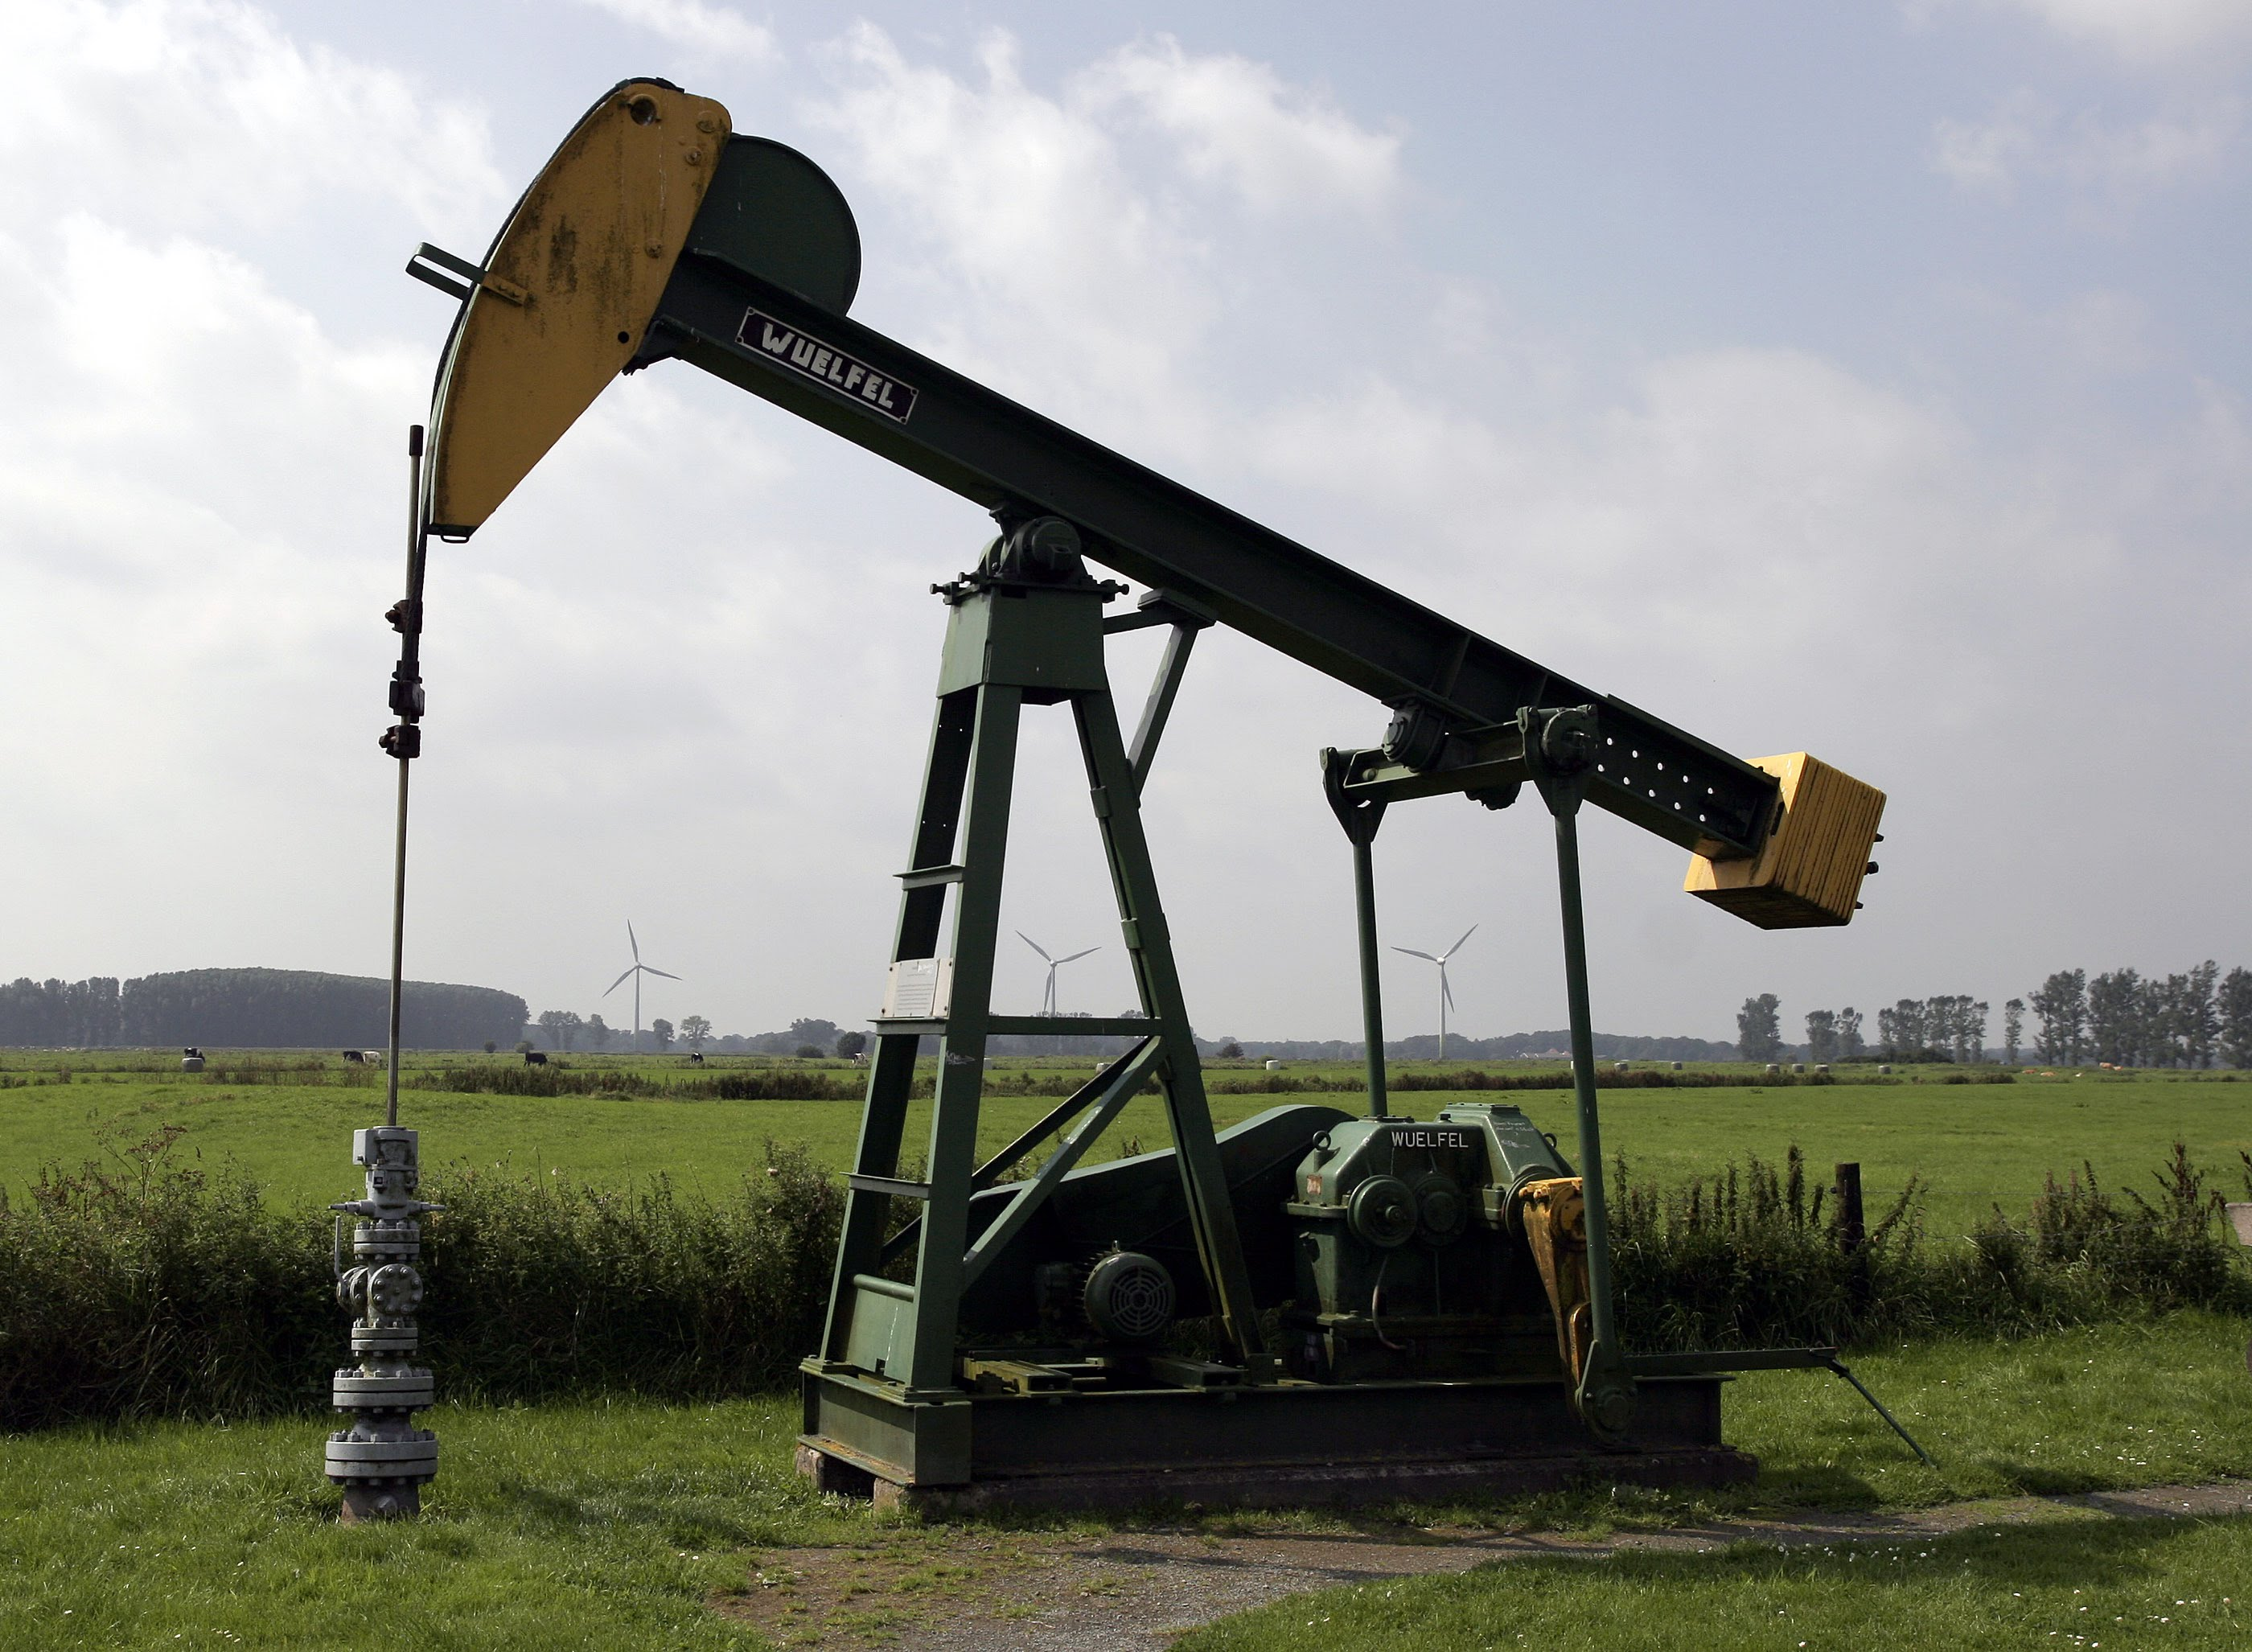 Photograph of an oil well